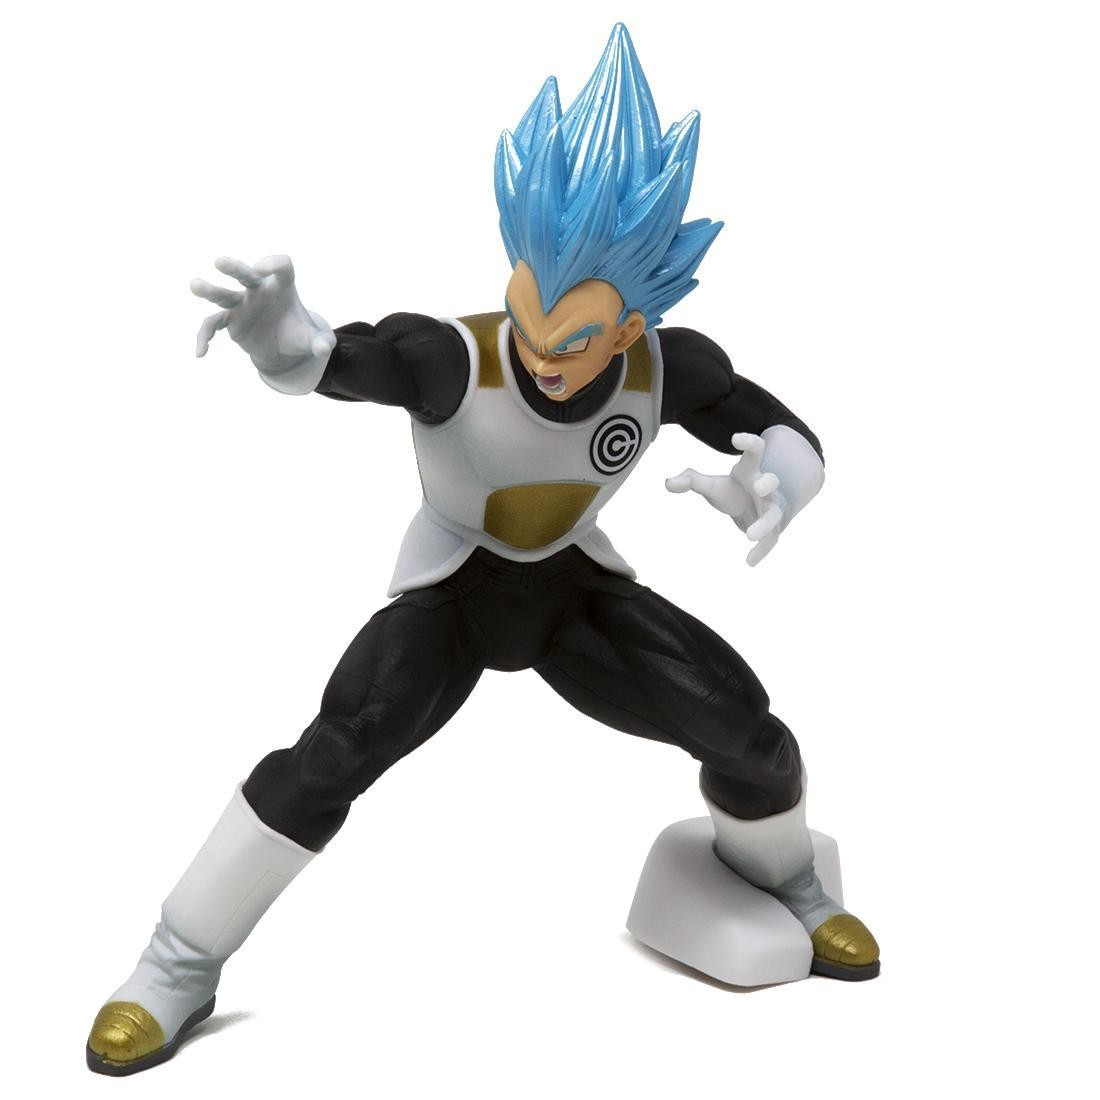 2 VEGETA SUPER DRAGON BALL HEROES FIGURE TRANSCENDENCE ART VOL